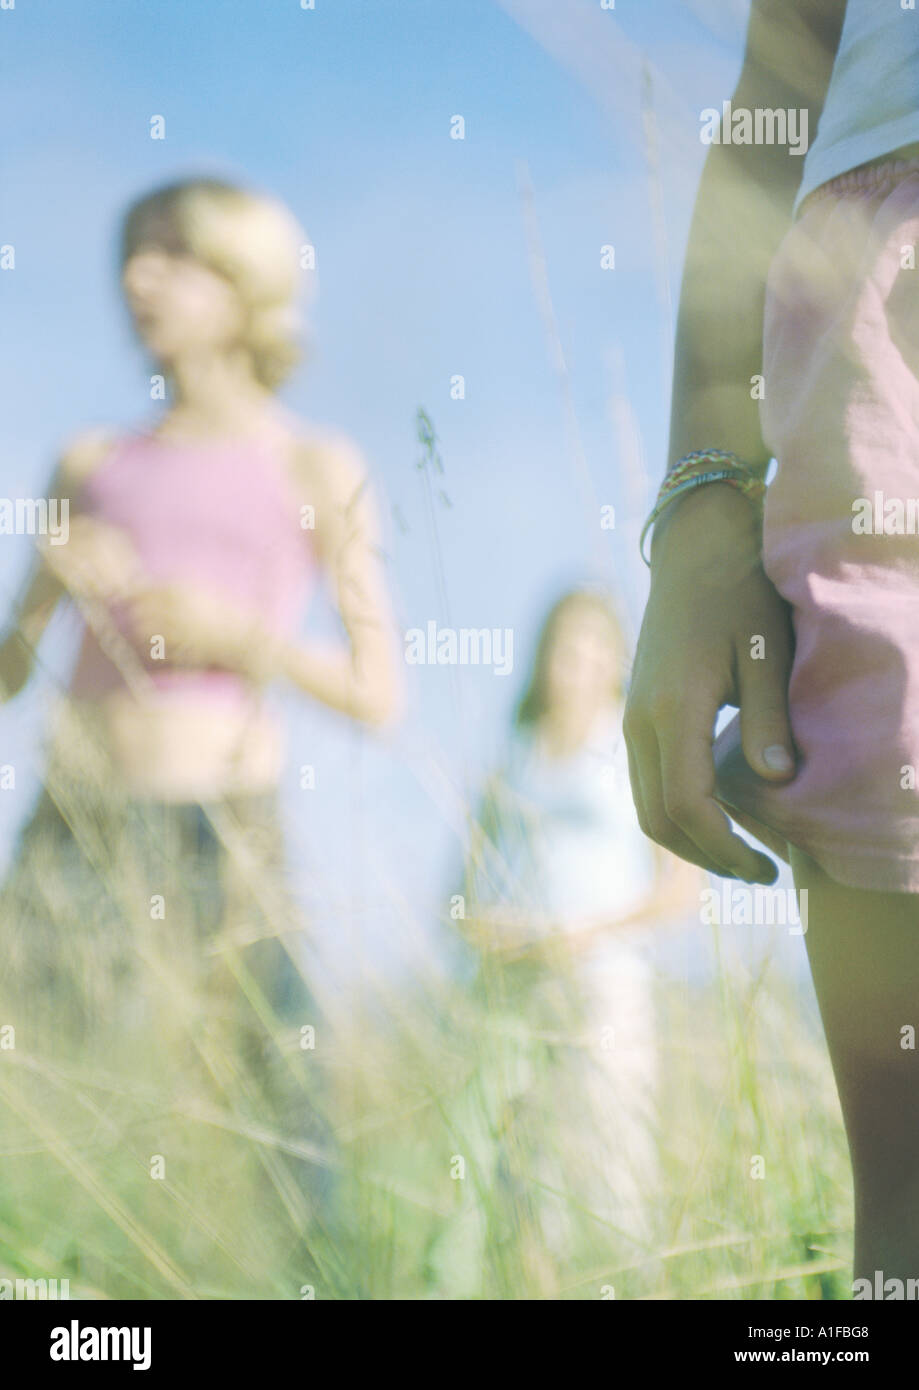 Three youngsters standing in grass - Stock Image